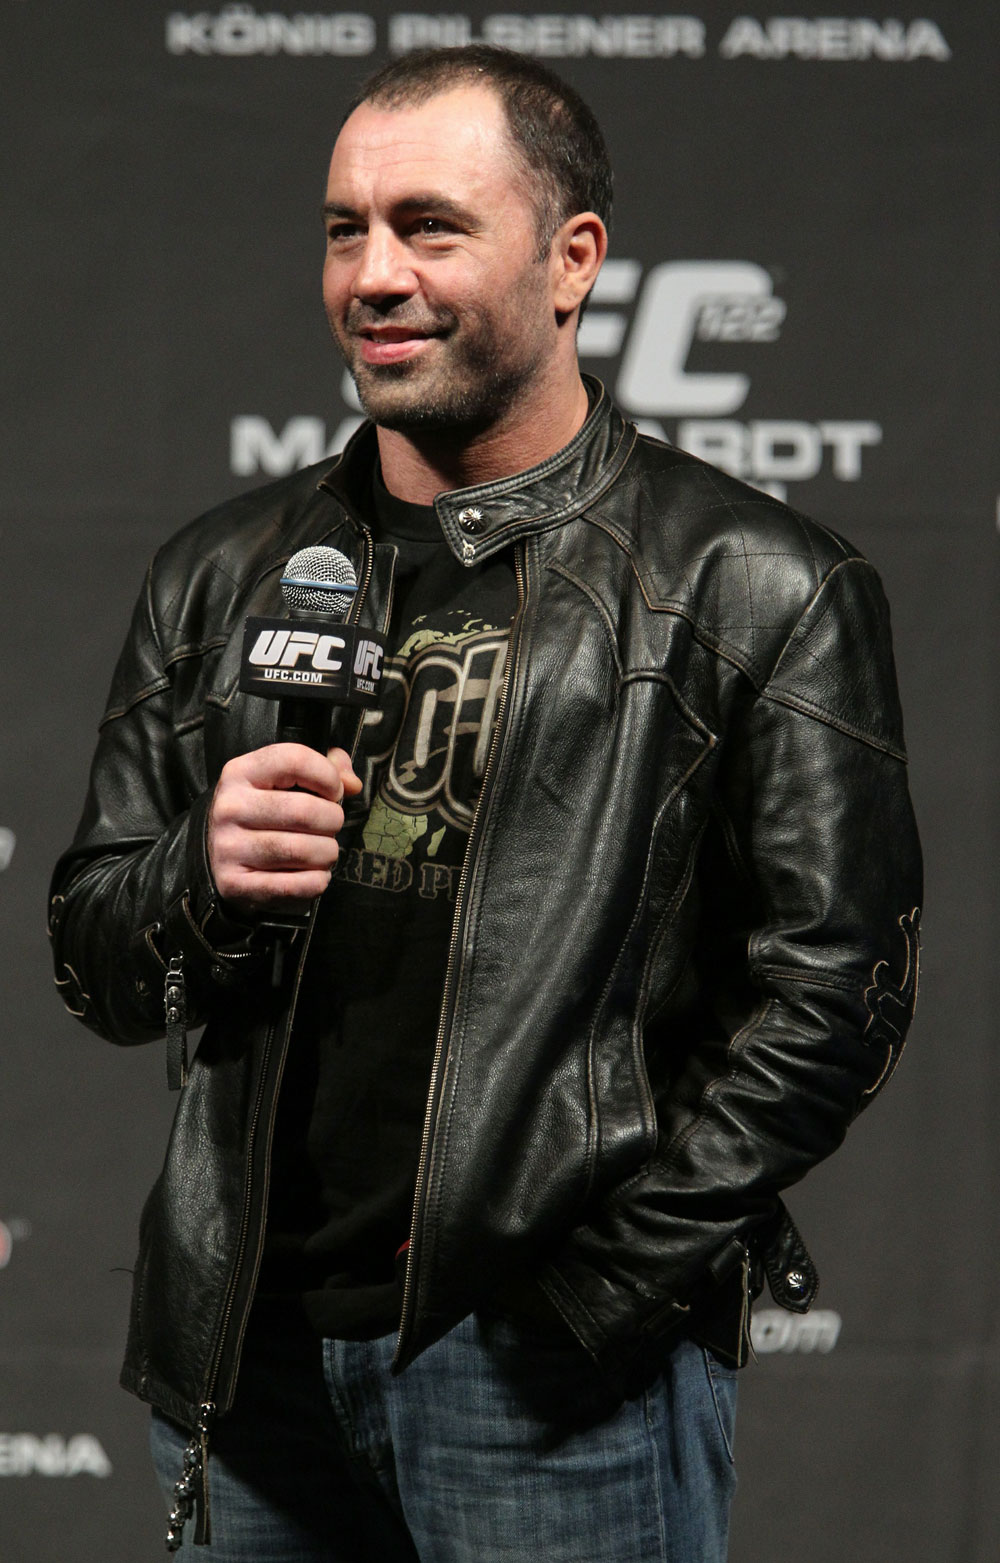 UFC commentator Joe Rogan answers questions from the fans before the UFC 122 weigh-in at the K&scaron;nig Pilsener Arena on November 12,  2010 in Oberhausen, Germany.  (Photo by Josh Hedges/Zuffa LLC/Zuffa LLC via Getty Images)